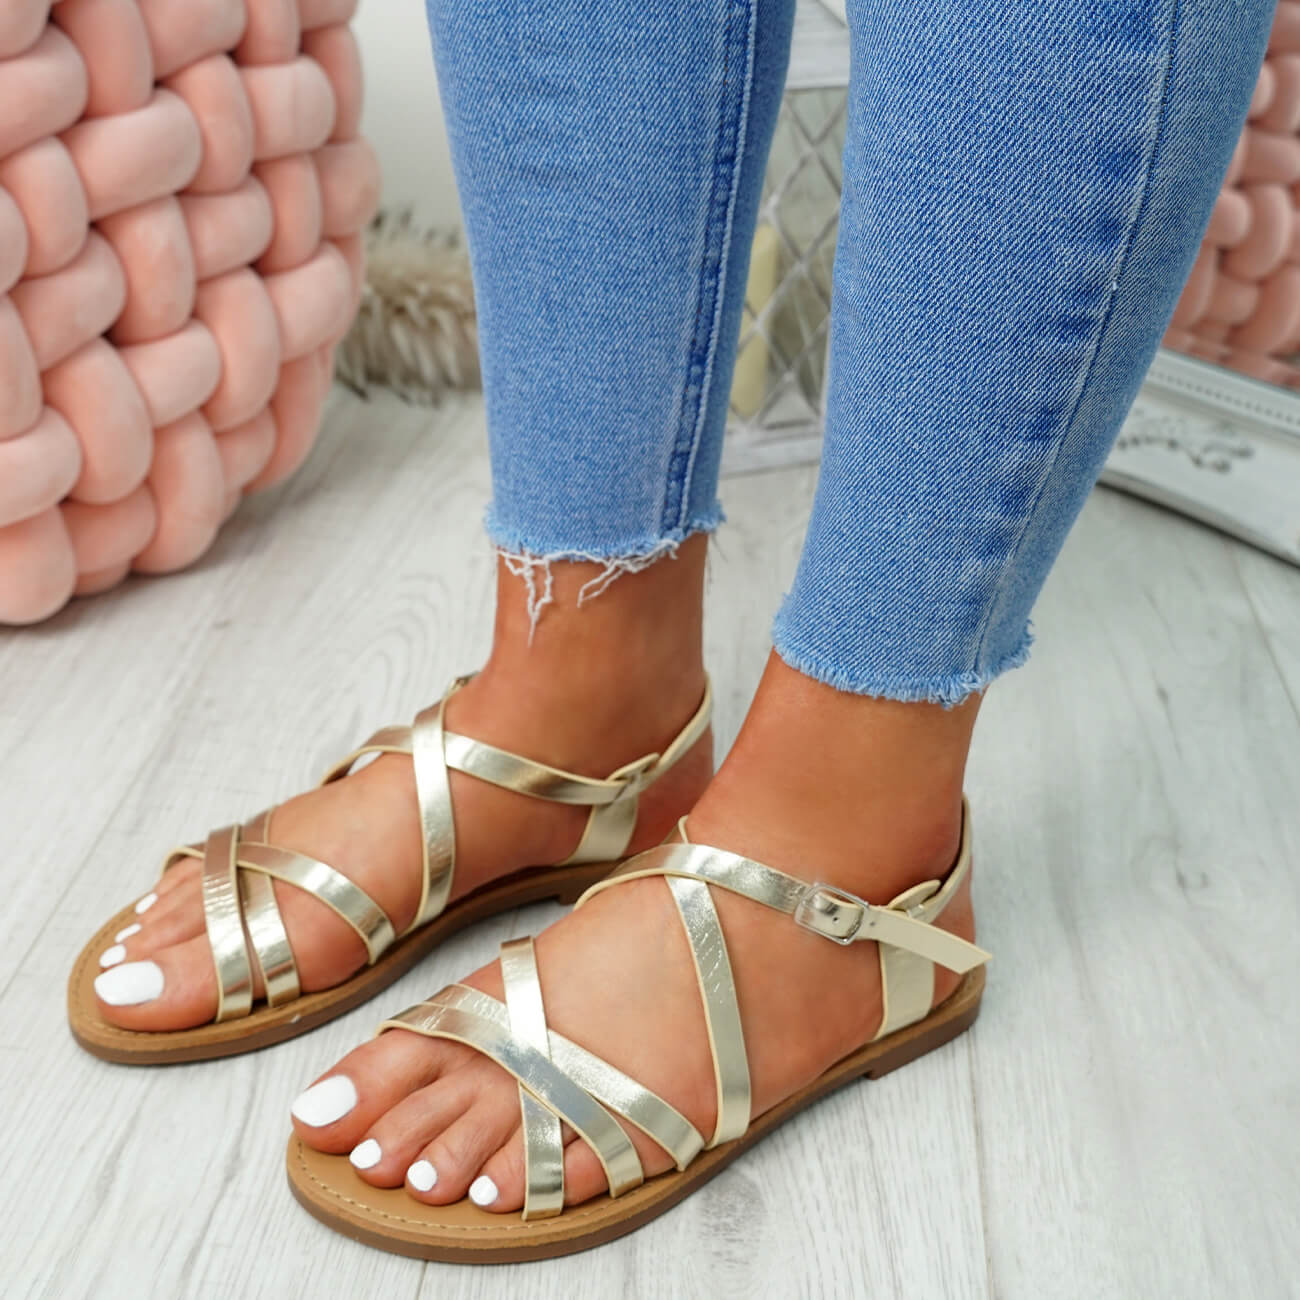 WOMENS-LADIES-ANKLE-STRAP-PEEP-TOE-BUCKLE-FLAT-SANDALS-SUMMER-CASUAL-SHOES thumbnail 17